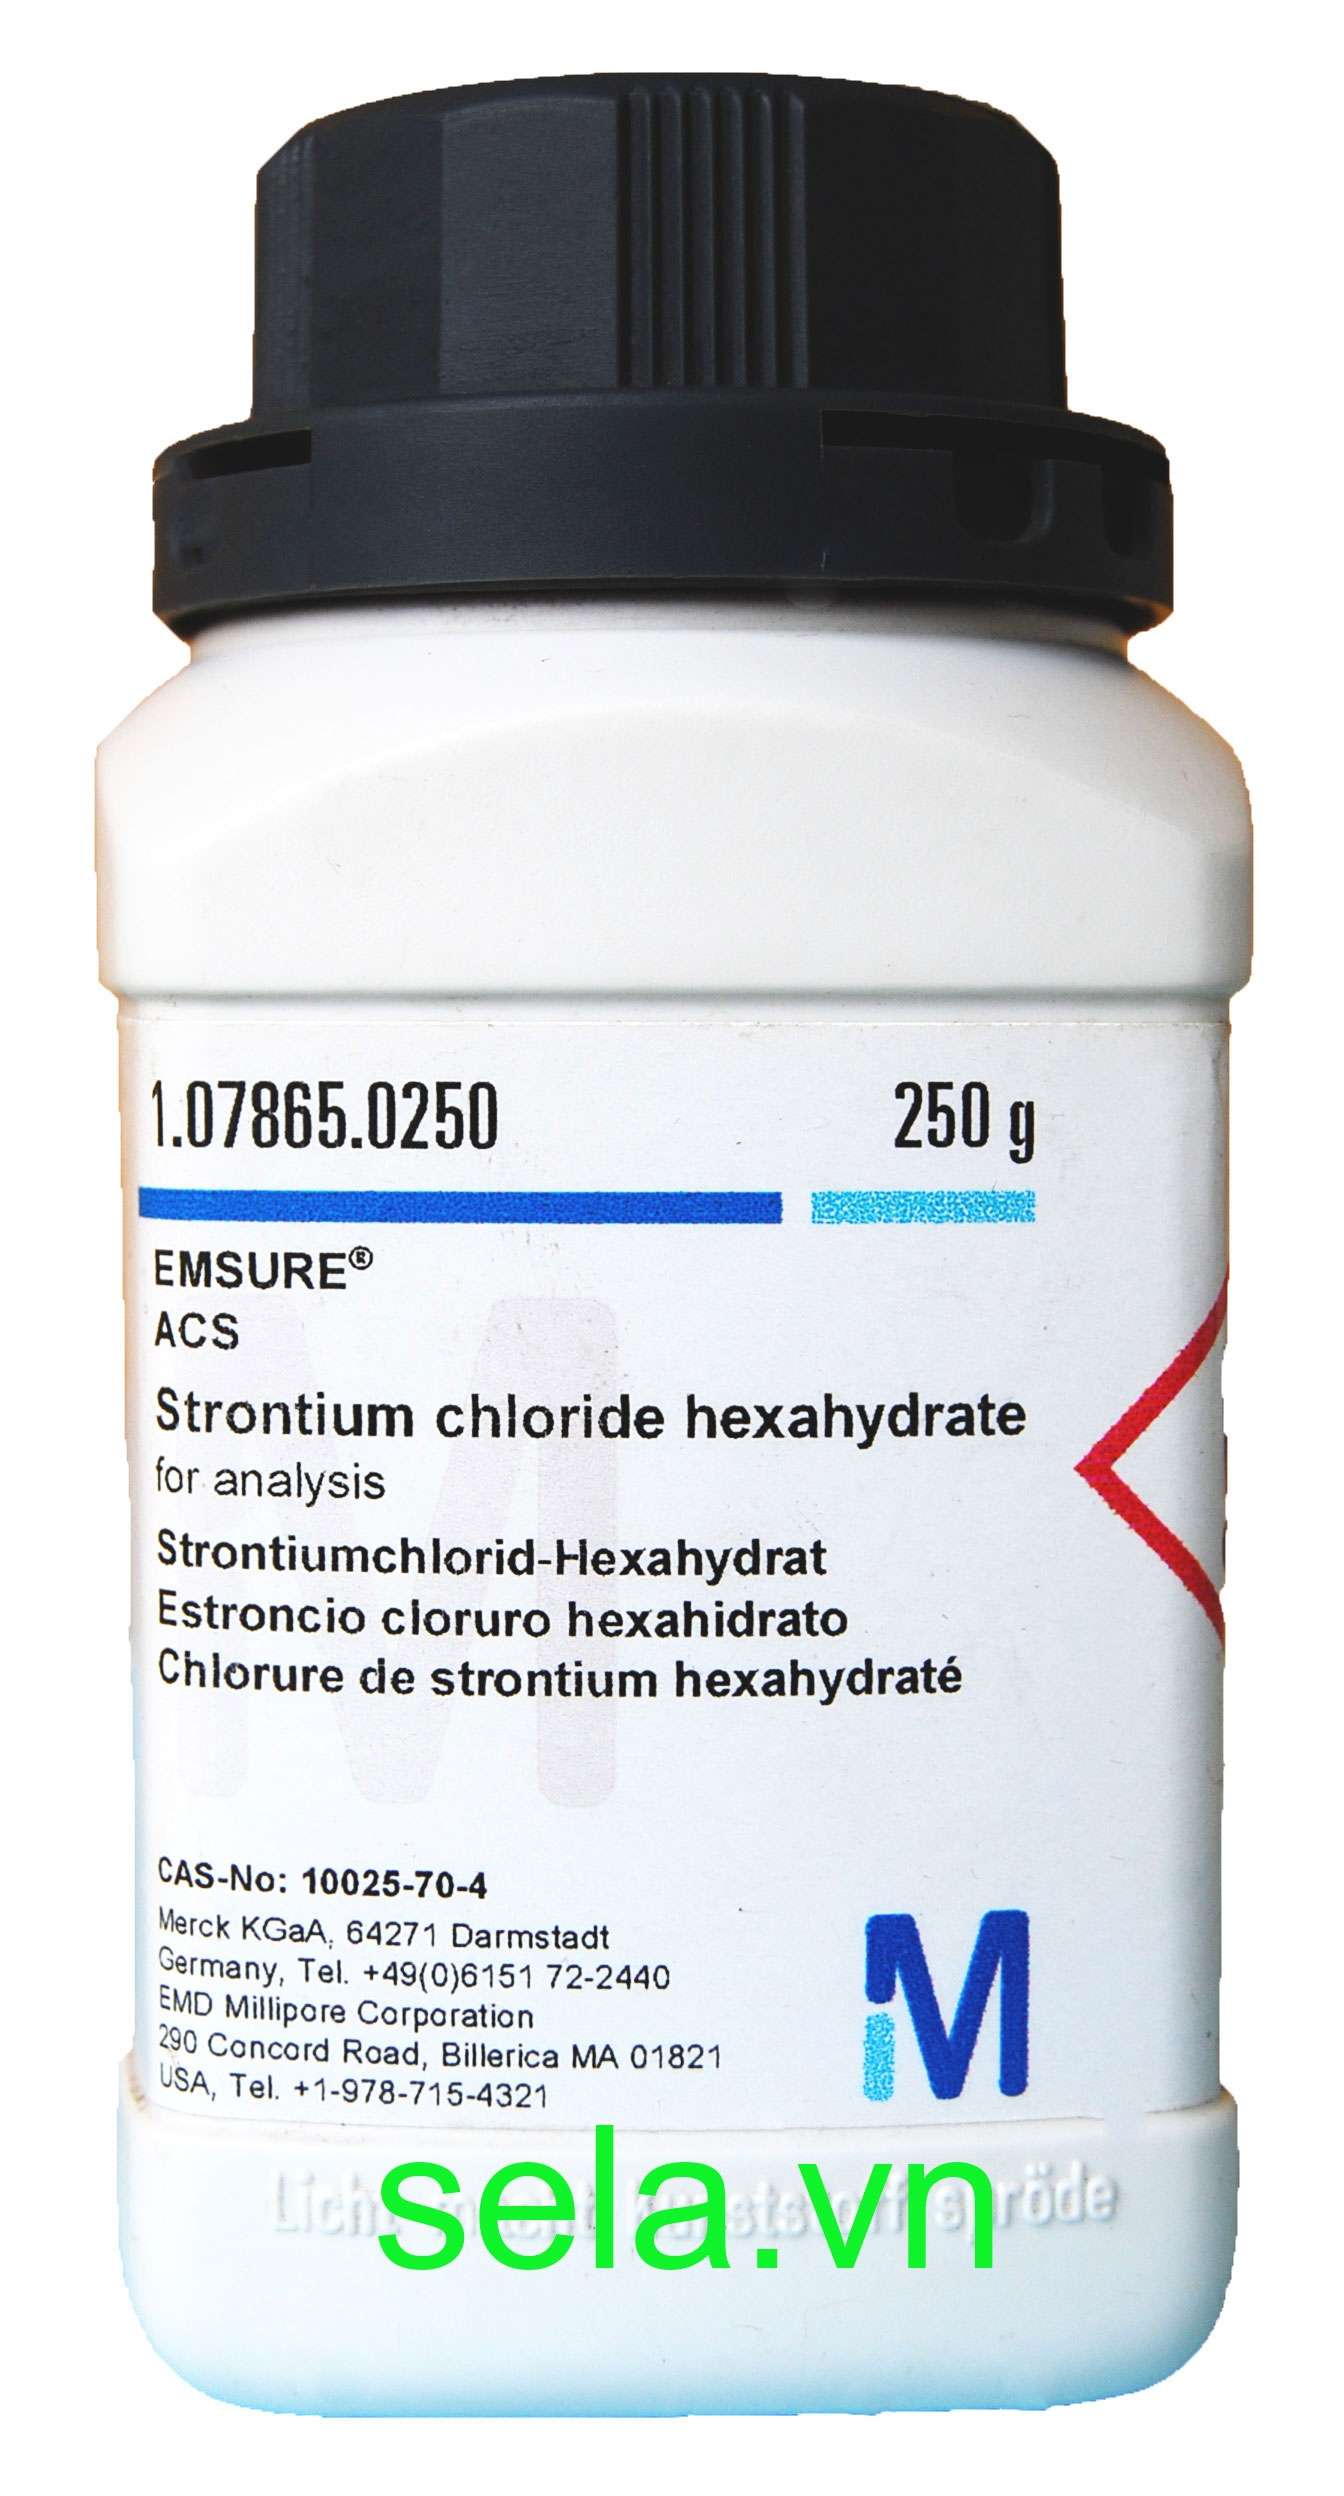 Strontium chloride hexahydrate for analysis EMSURE® ACS